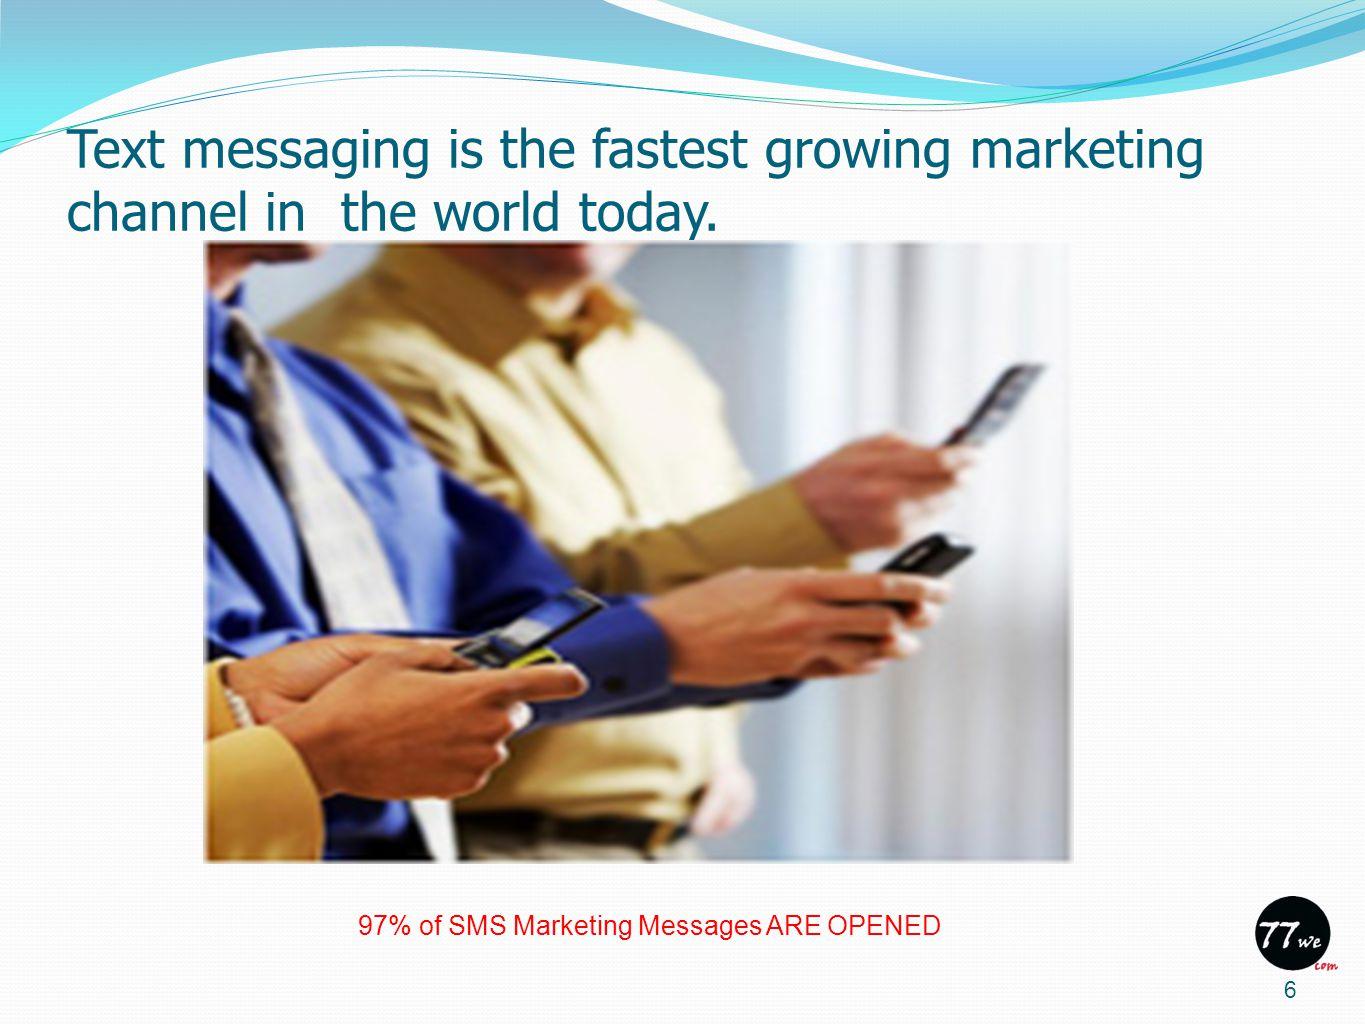 Text messaging is the fastest growing marketing channel in the world today.